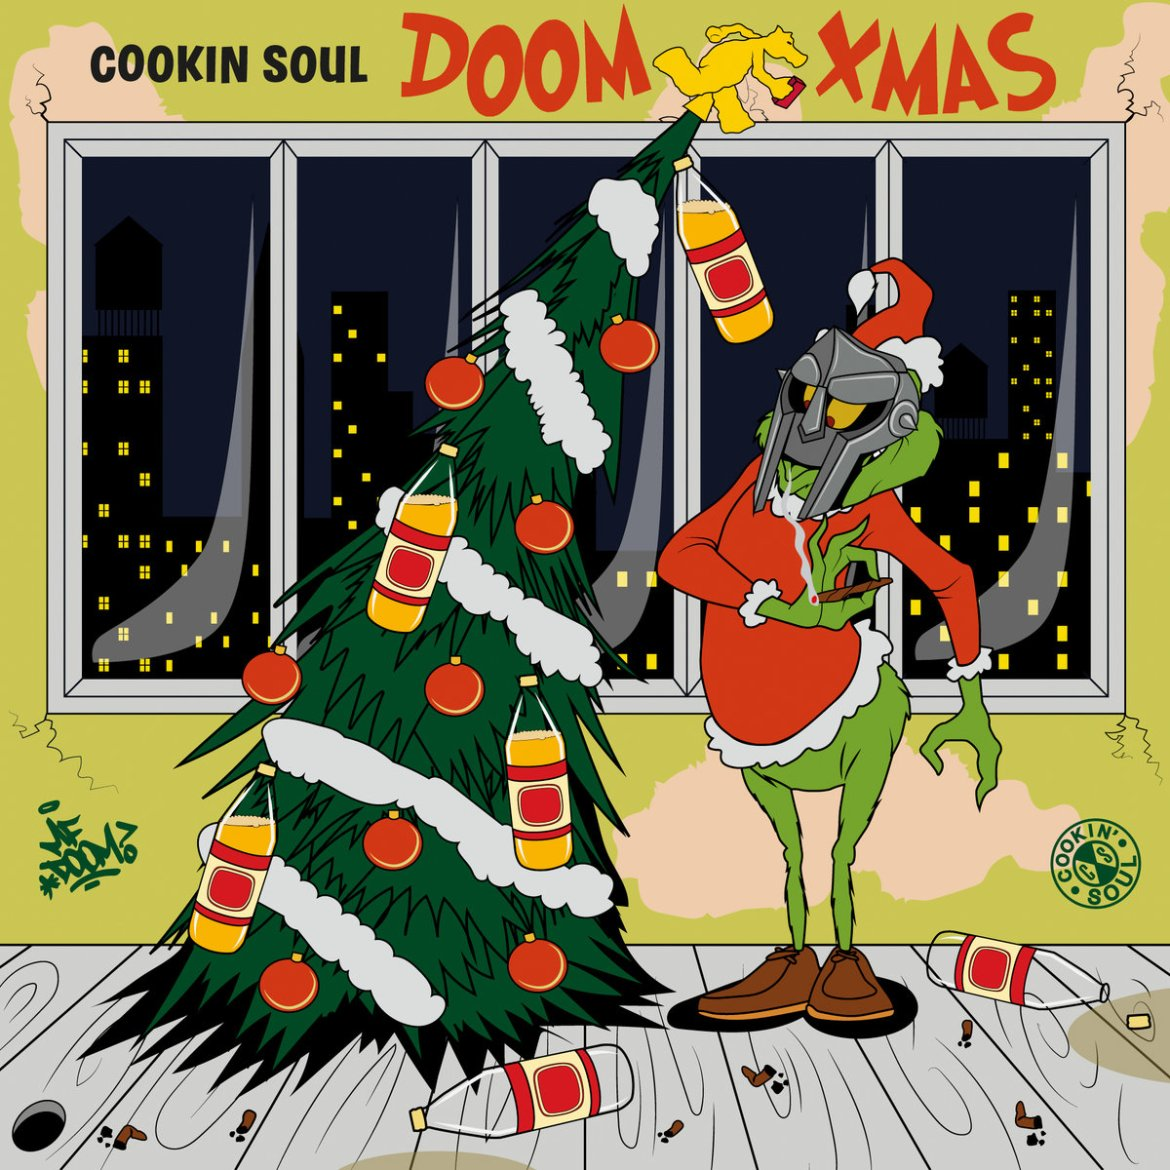 The album art displays the Grinch wearing a Doom mask as he decorates a Christmas tree with bottles of alcohol and solid red ball ornaments, all in the foreground of a city at night.